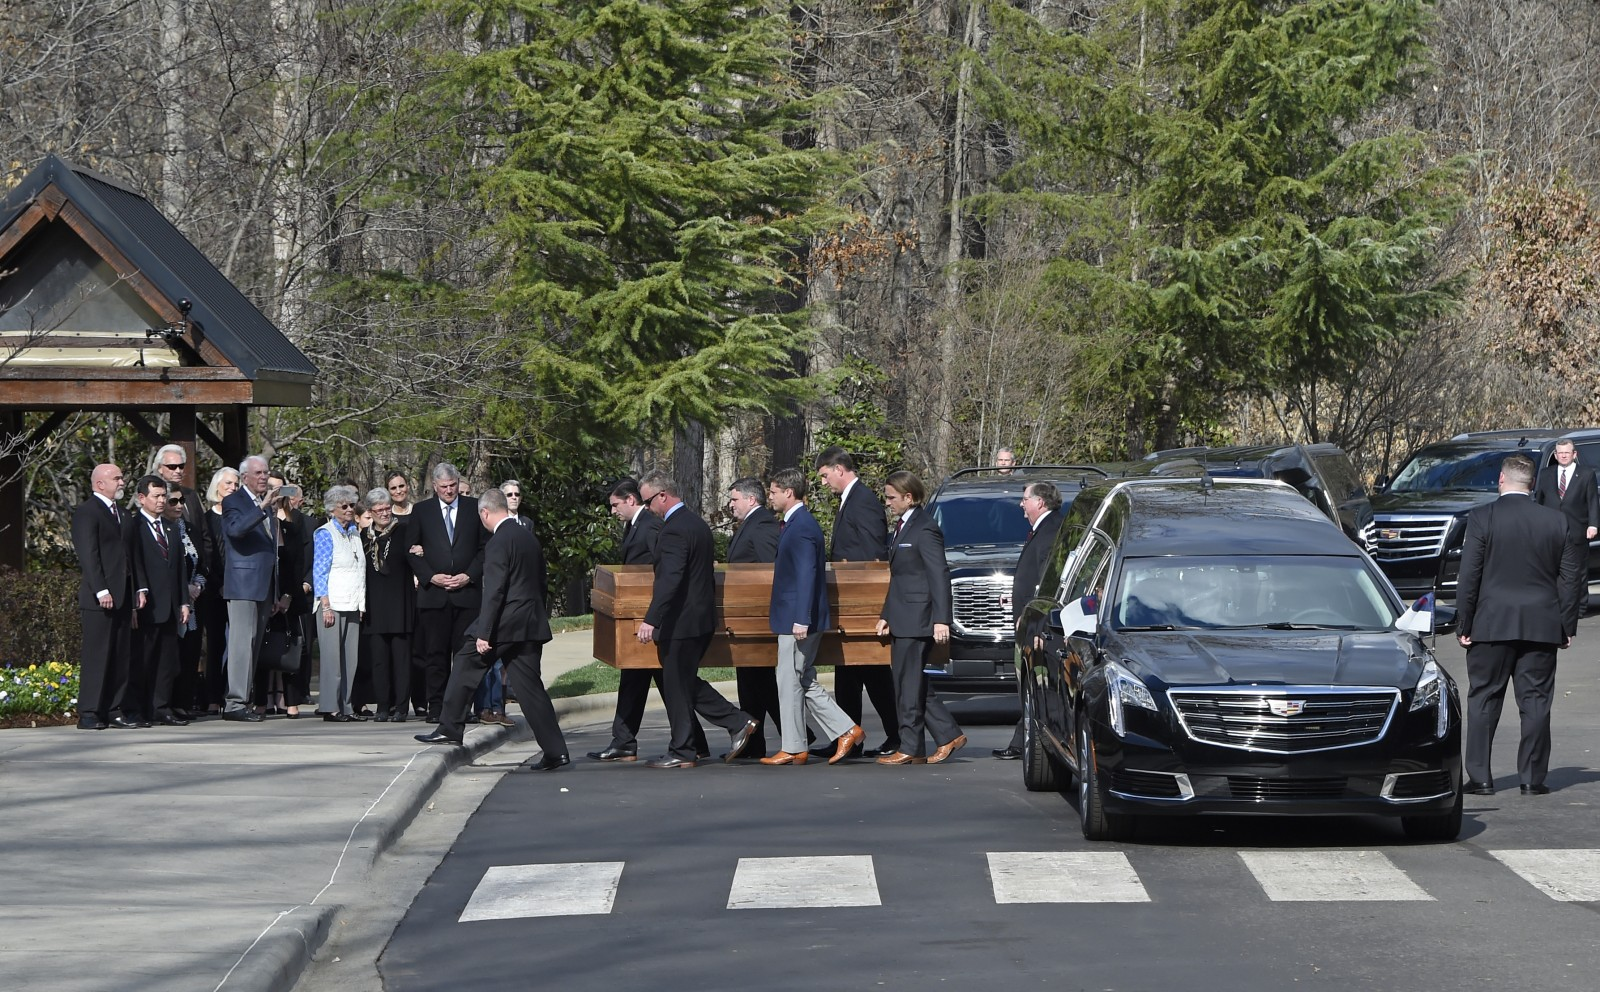 Pallbearers carry the casket with the body of Billy Graham past family members as it arrives at the Billy Graham Library in Charlotte, N.C., Saturday, Feb. 24, 2018. (Kathy Kmonicek/pool photo)